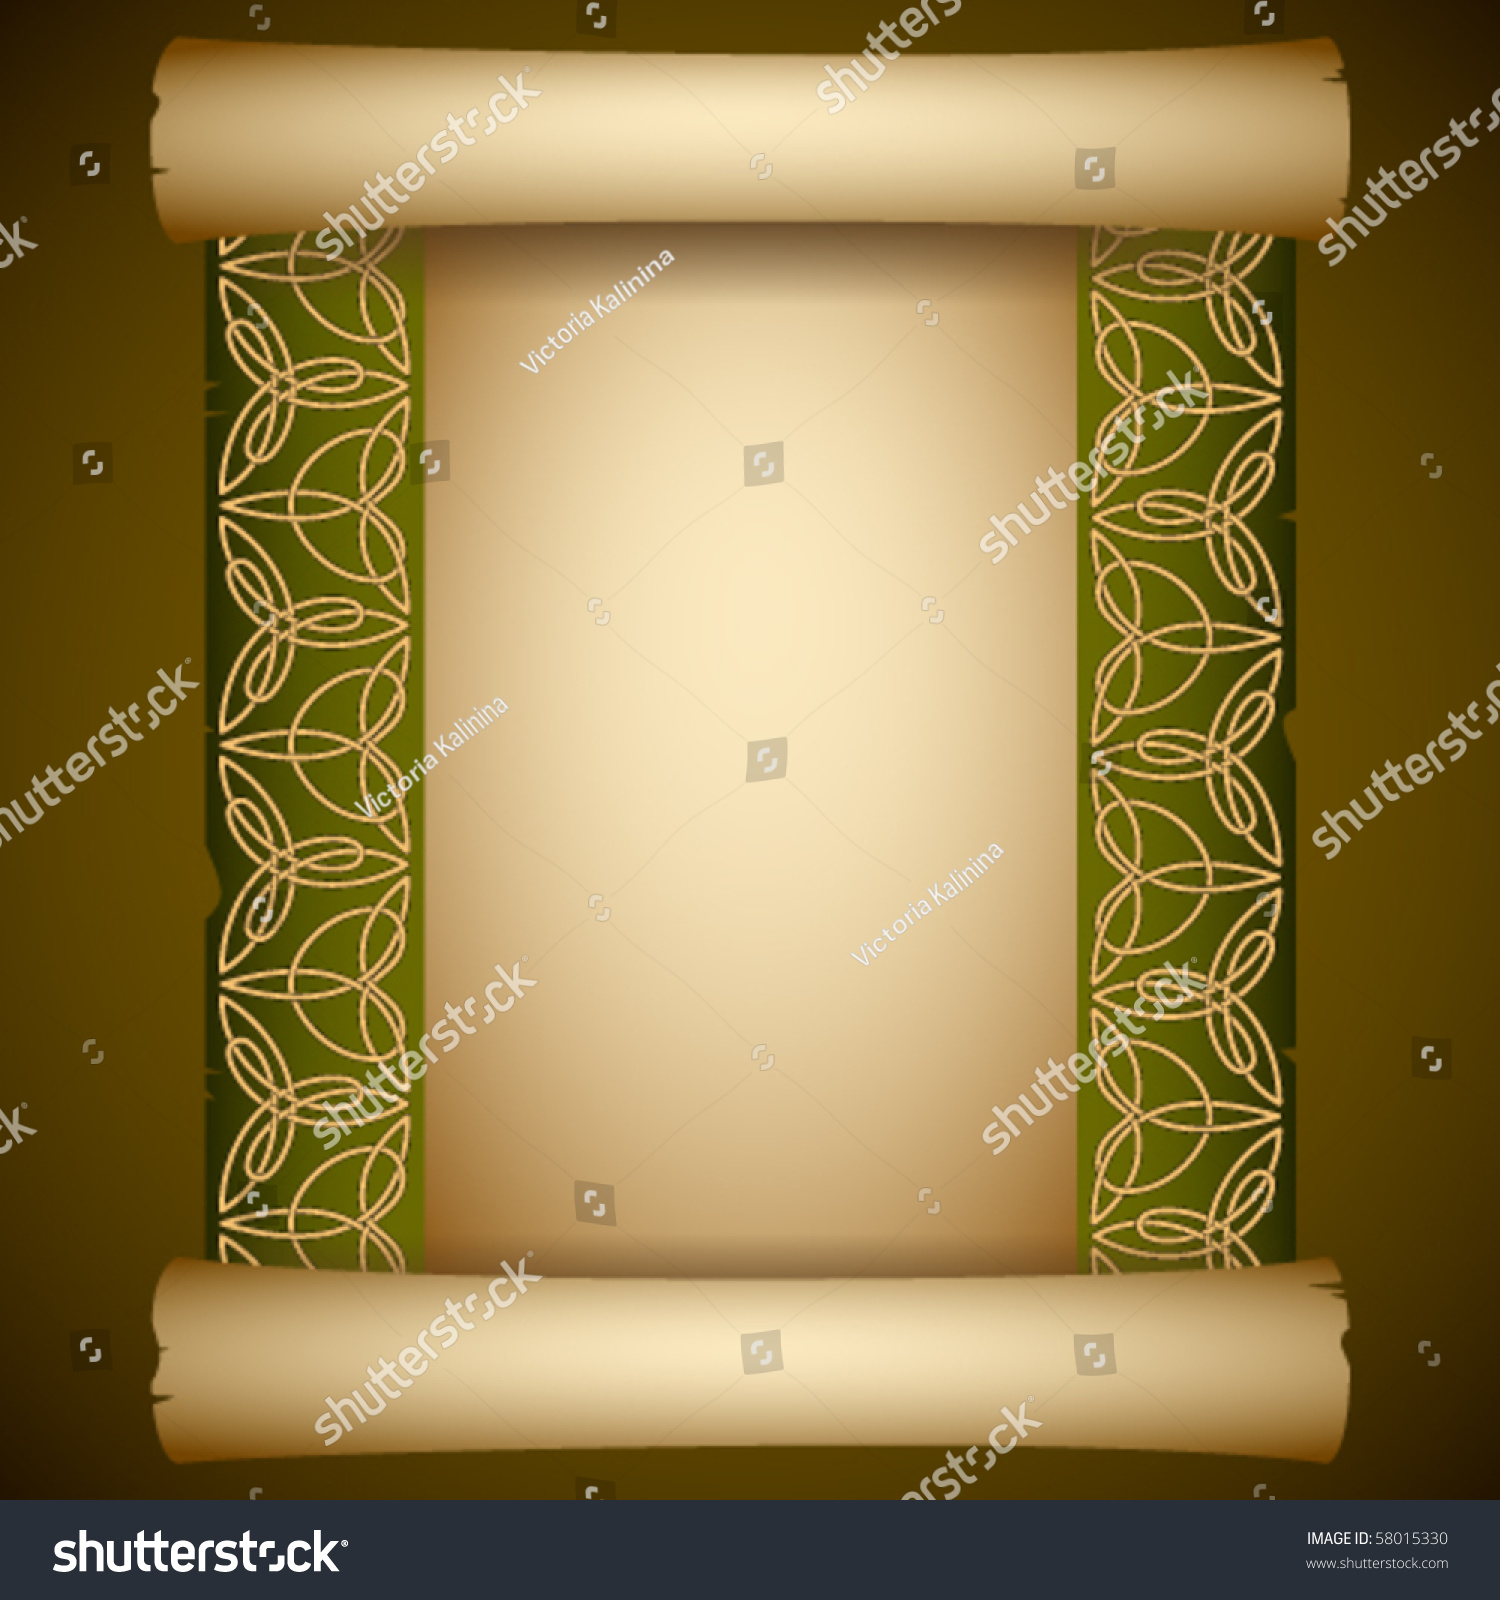 vintage background ancient scroll with celtic ornament